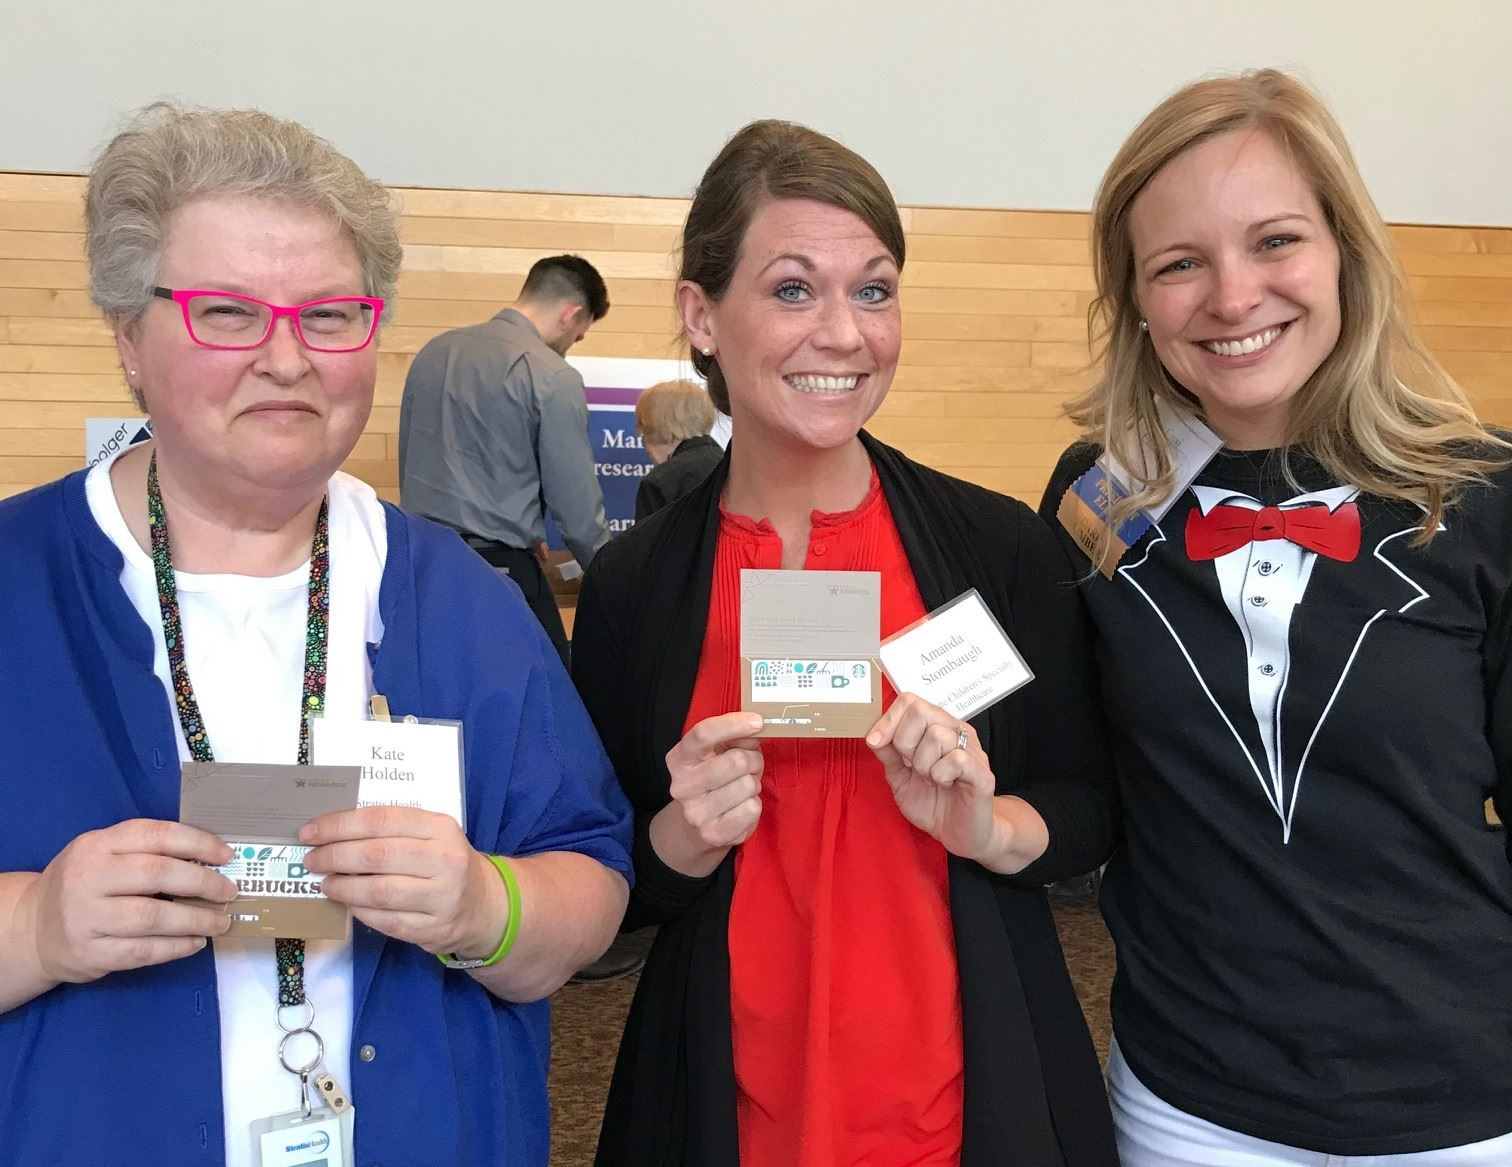 Cassi wears a tuxedo t-shirt as she interacts with two MHSCN members who are showing off some prizes.